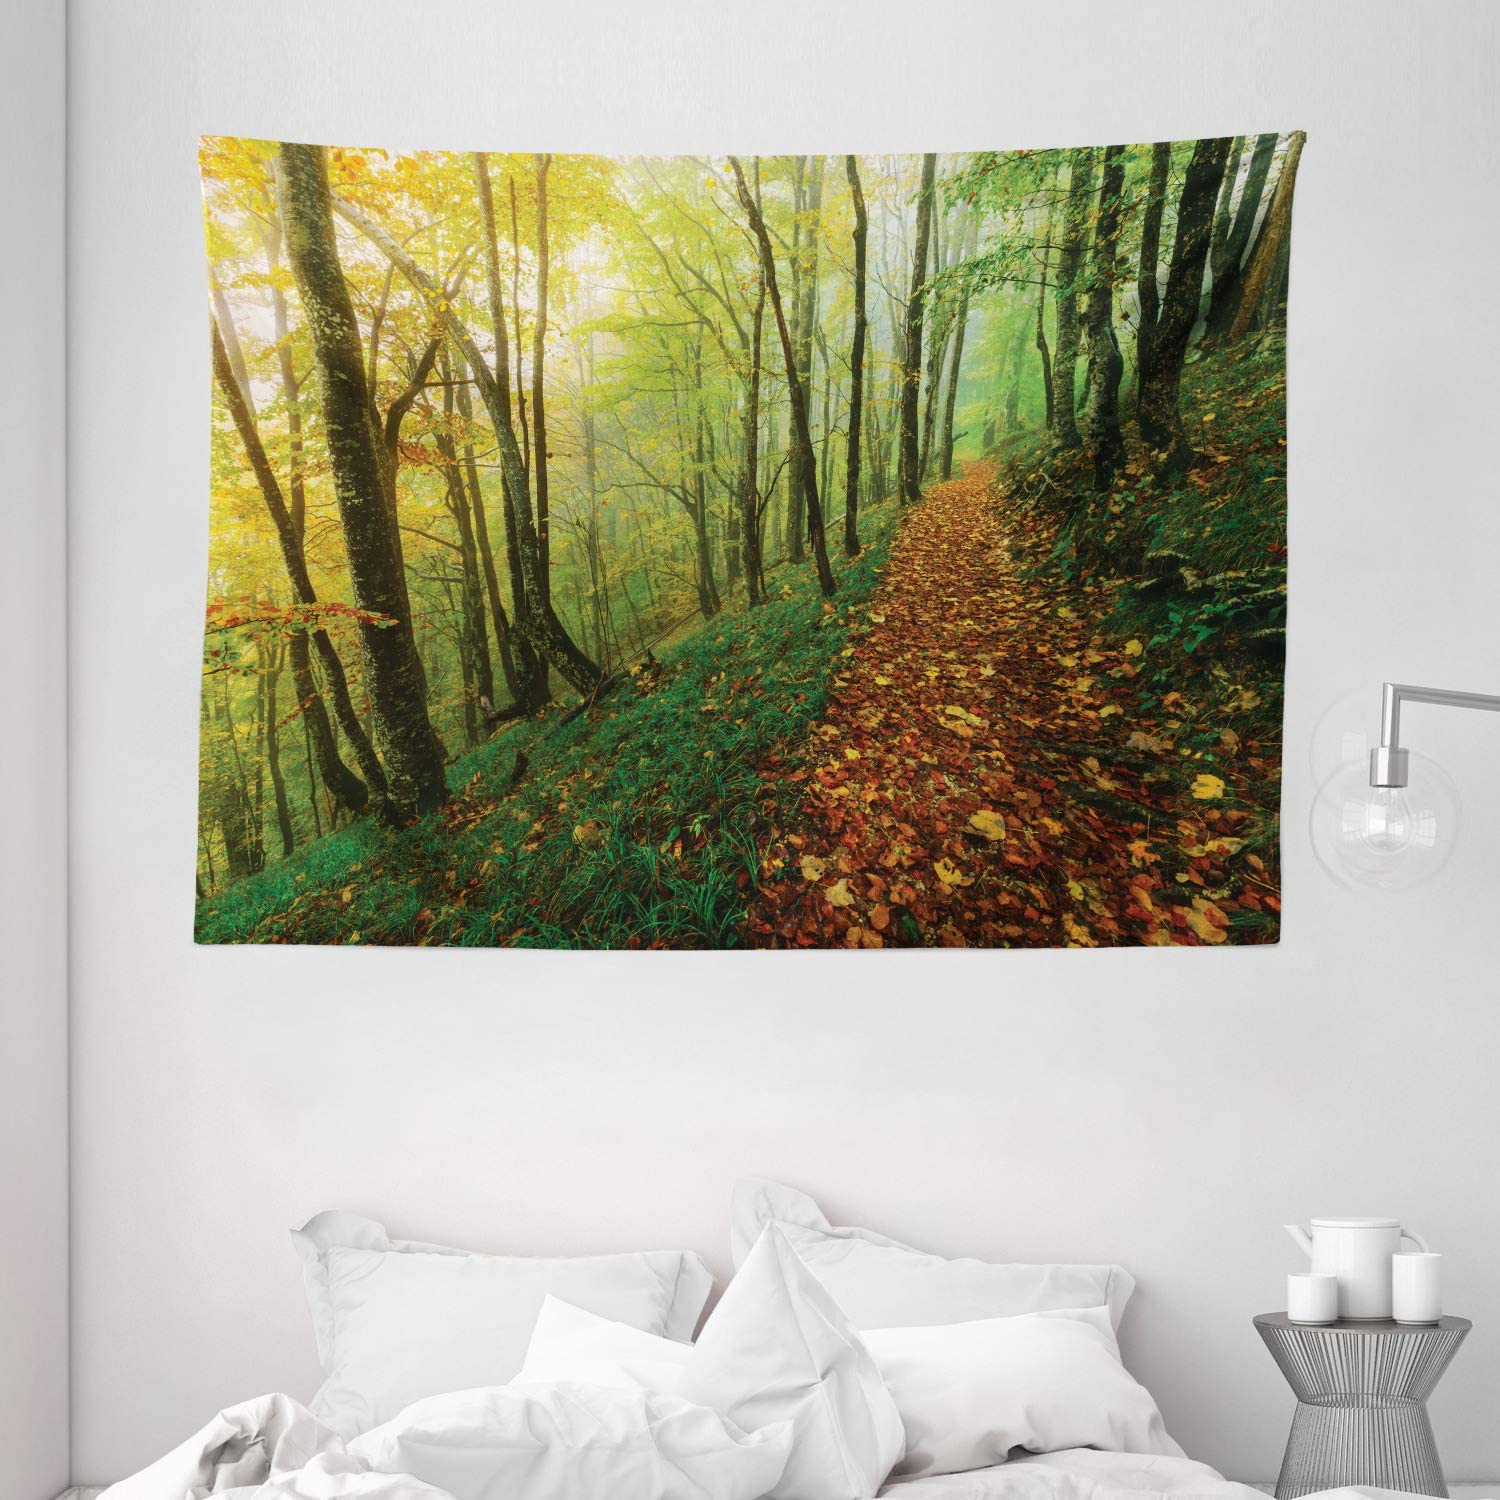 Ambesonne National Parks Home Decor Tapestry, Surreal Foggy Deep in Forest Eco Path Full of Leaves Landscape, Wall Hanging for Bedroom Living Room Dorm, 80 W X 60 L Inches, Green Yellow